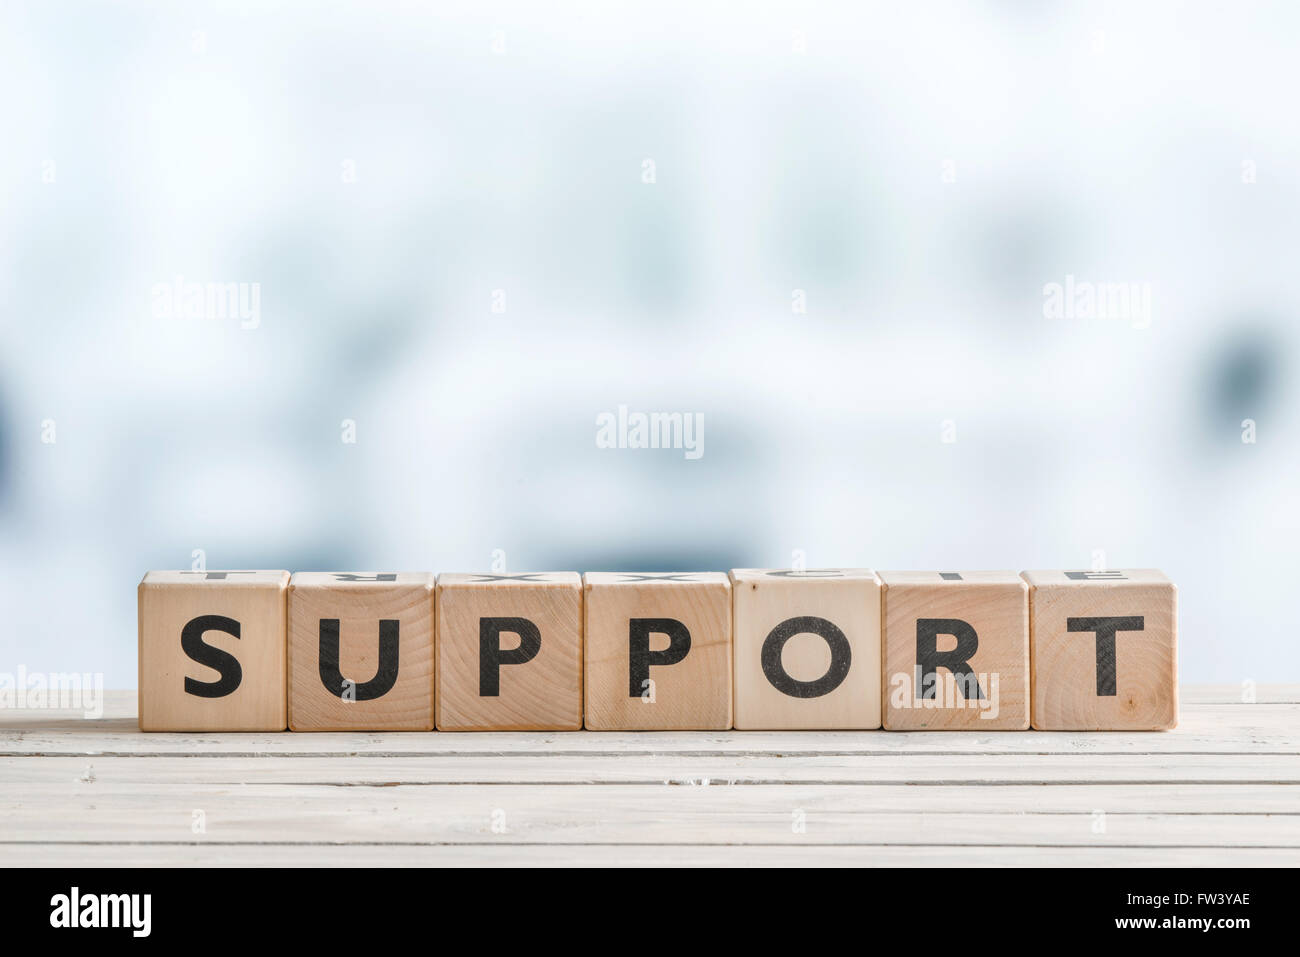 Support sign with blocks on a wooden office desk - Stock Image